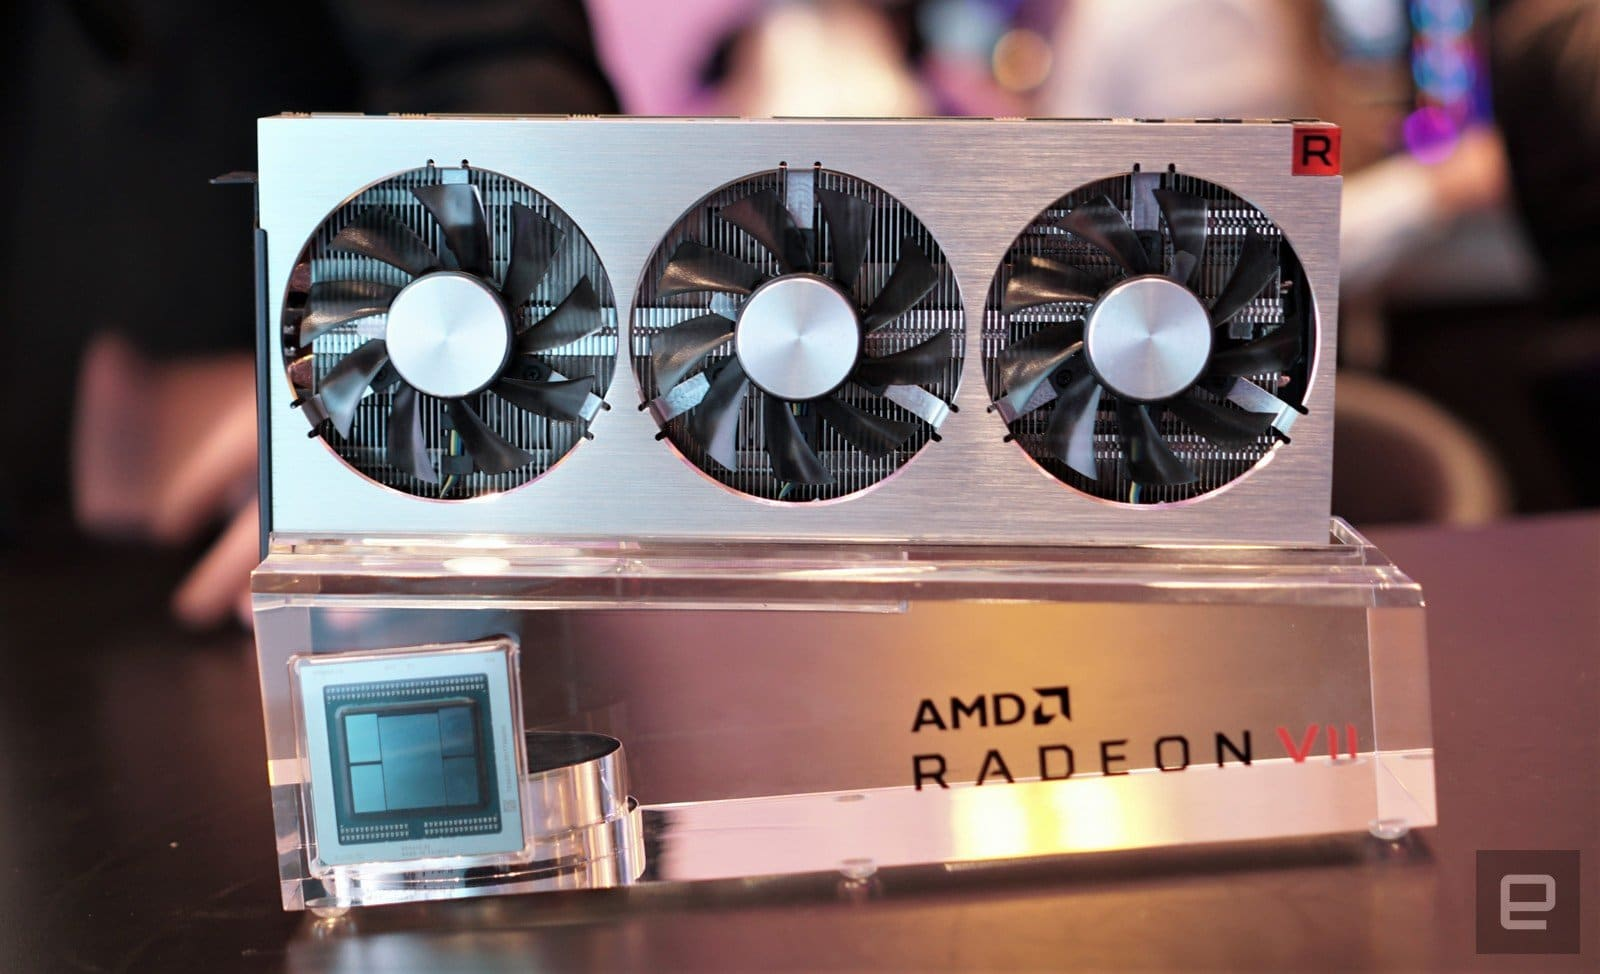 AMD is edging closer to breaking NVIDIA's graphic dominance